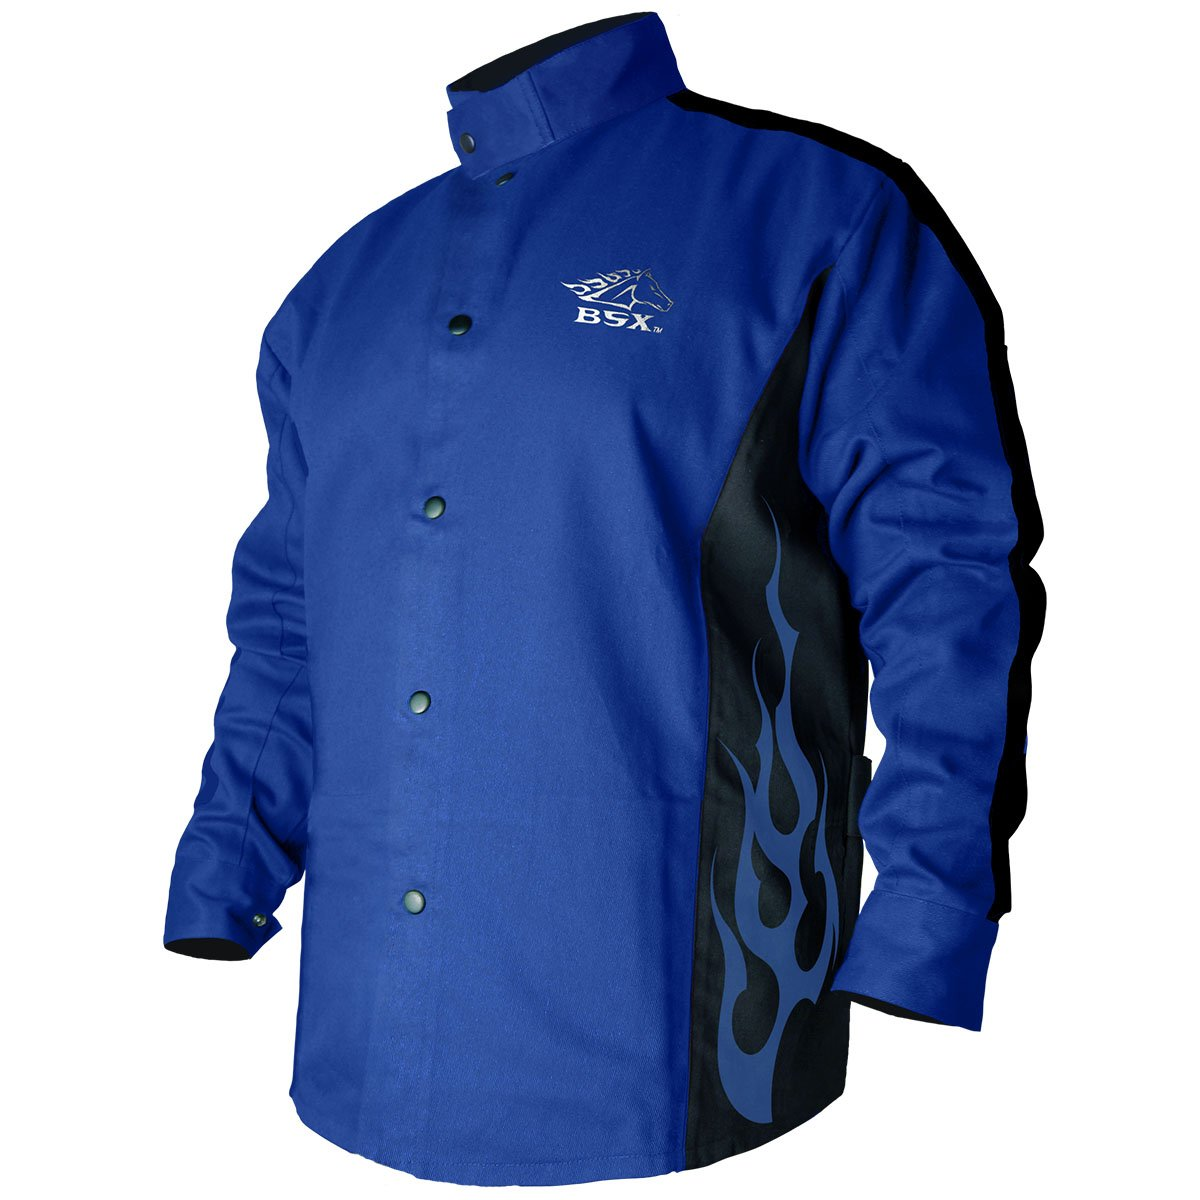 revco bsx cotton welding jacket royal blue flames